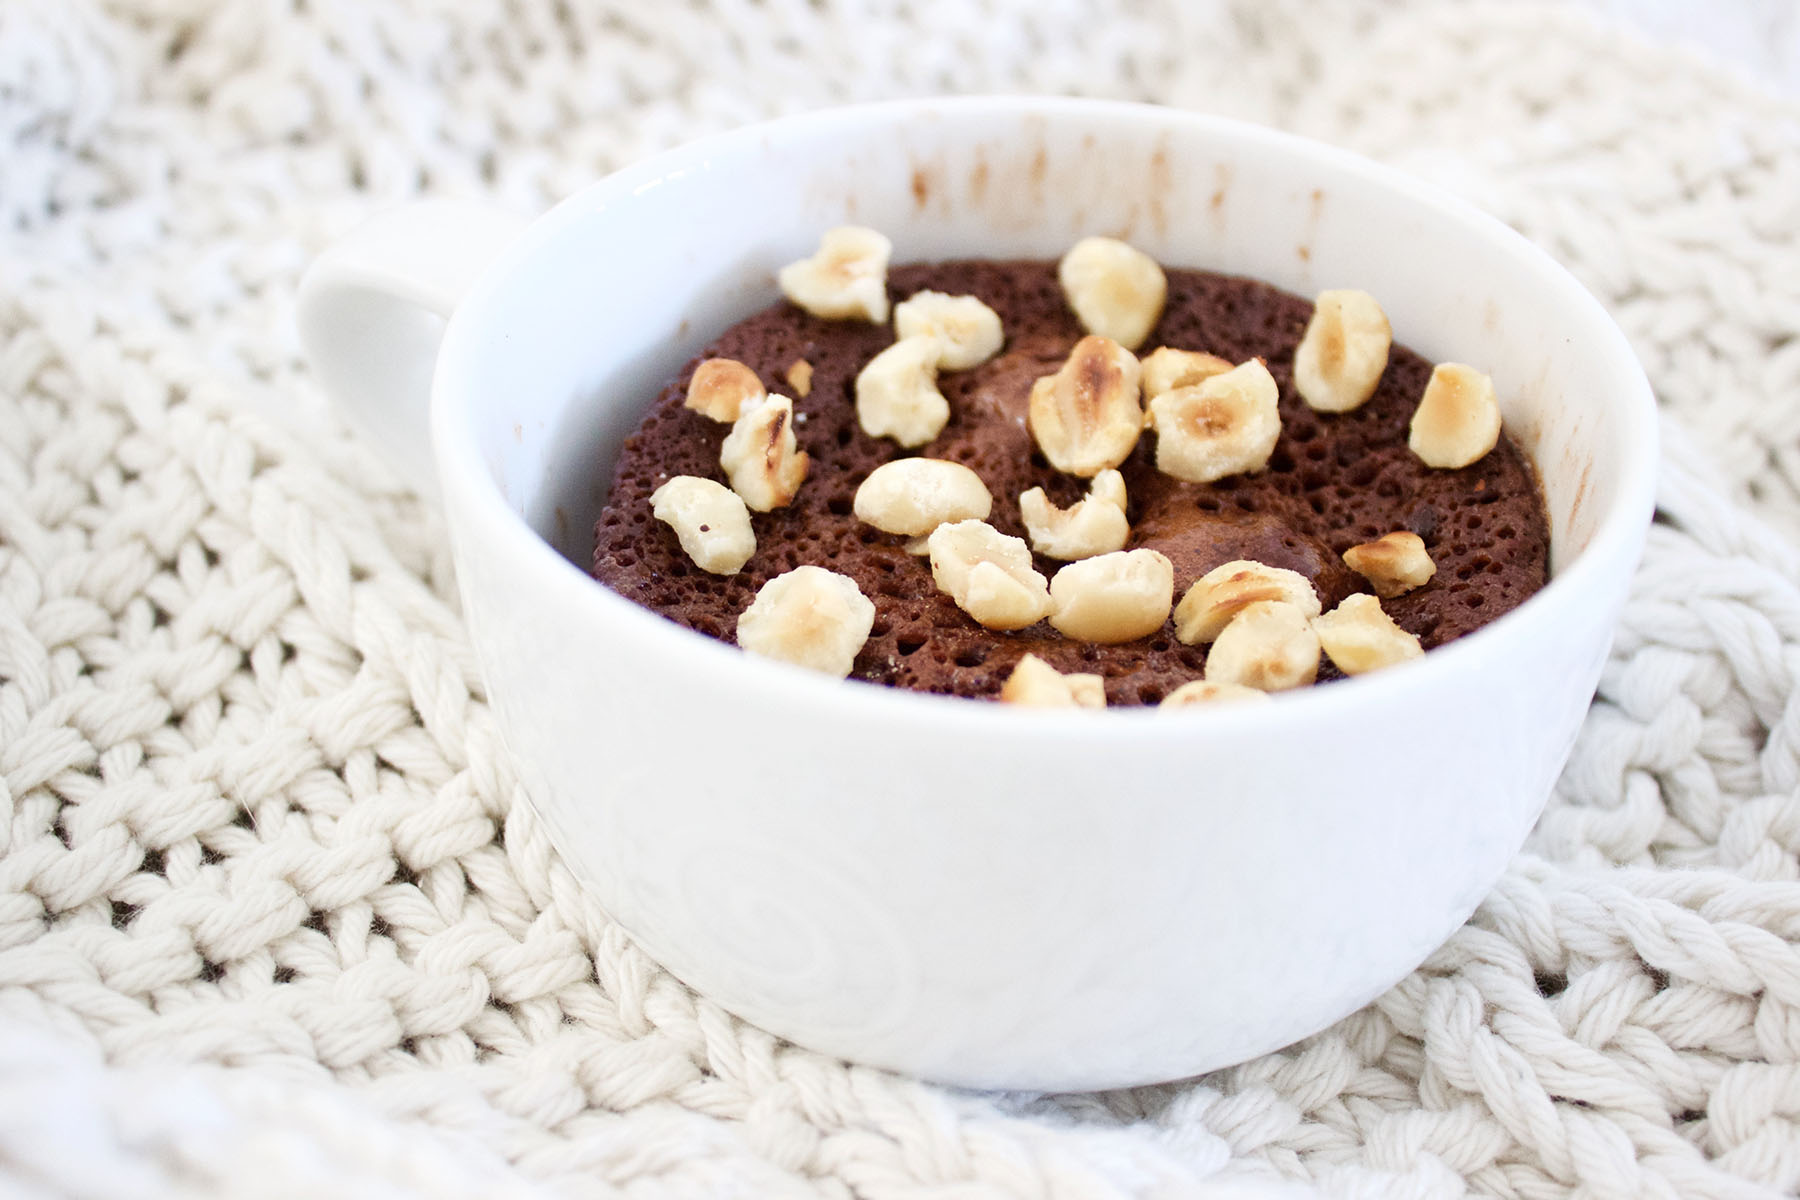 Healthy Girl Chocolate Mugcake Recipe